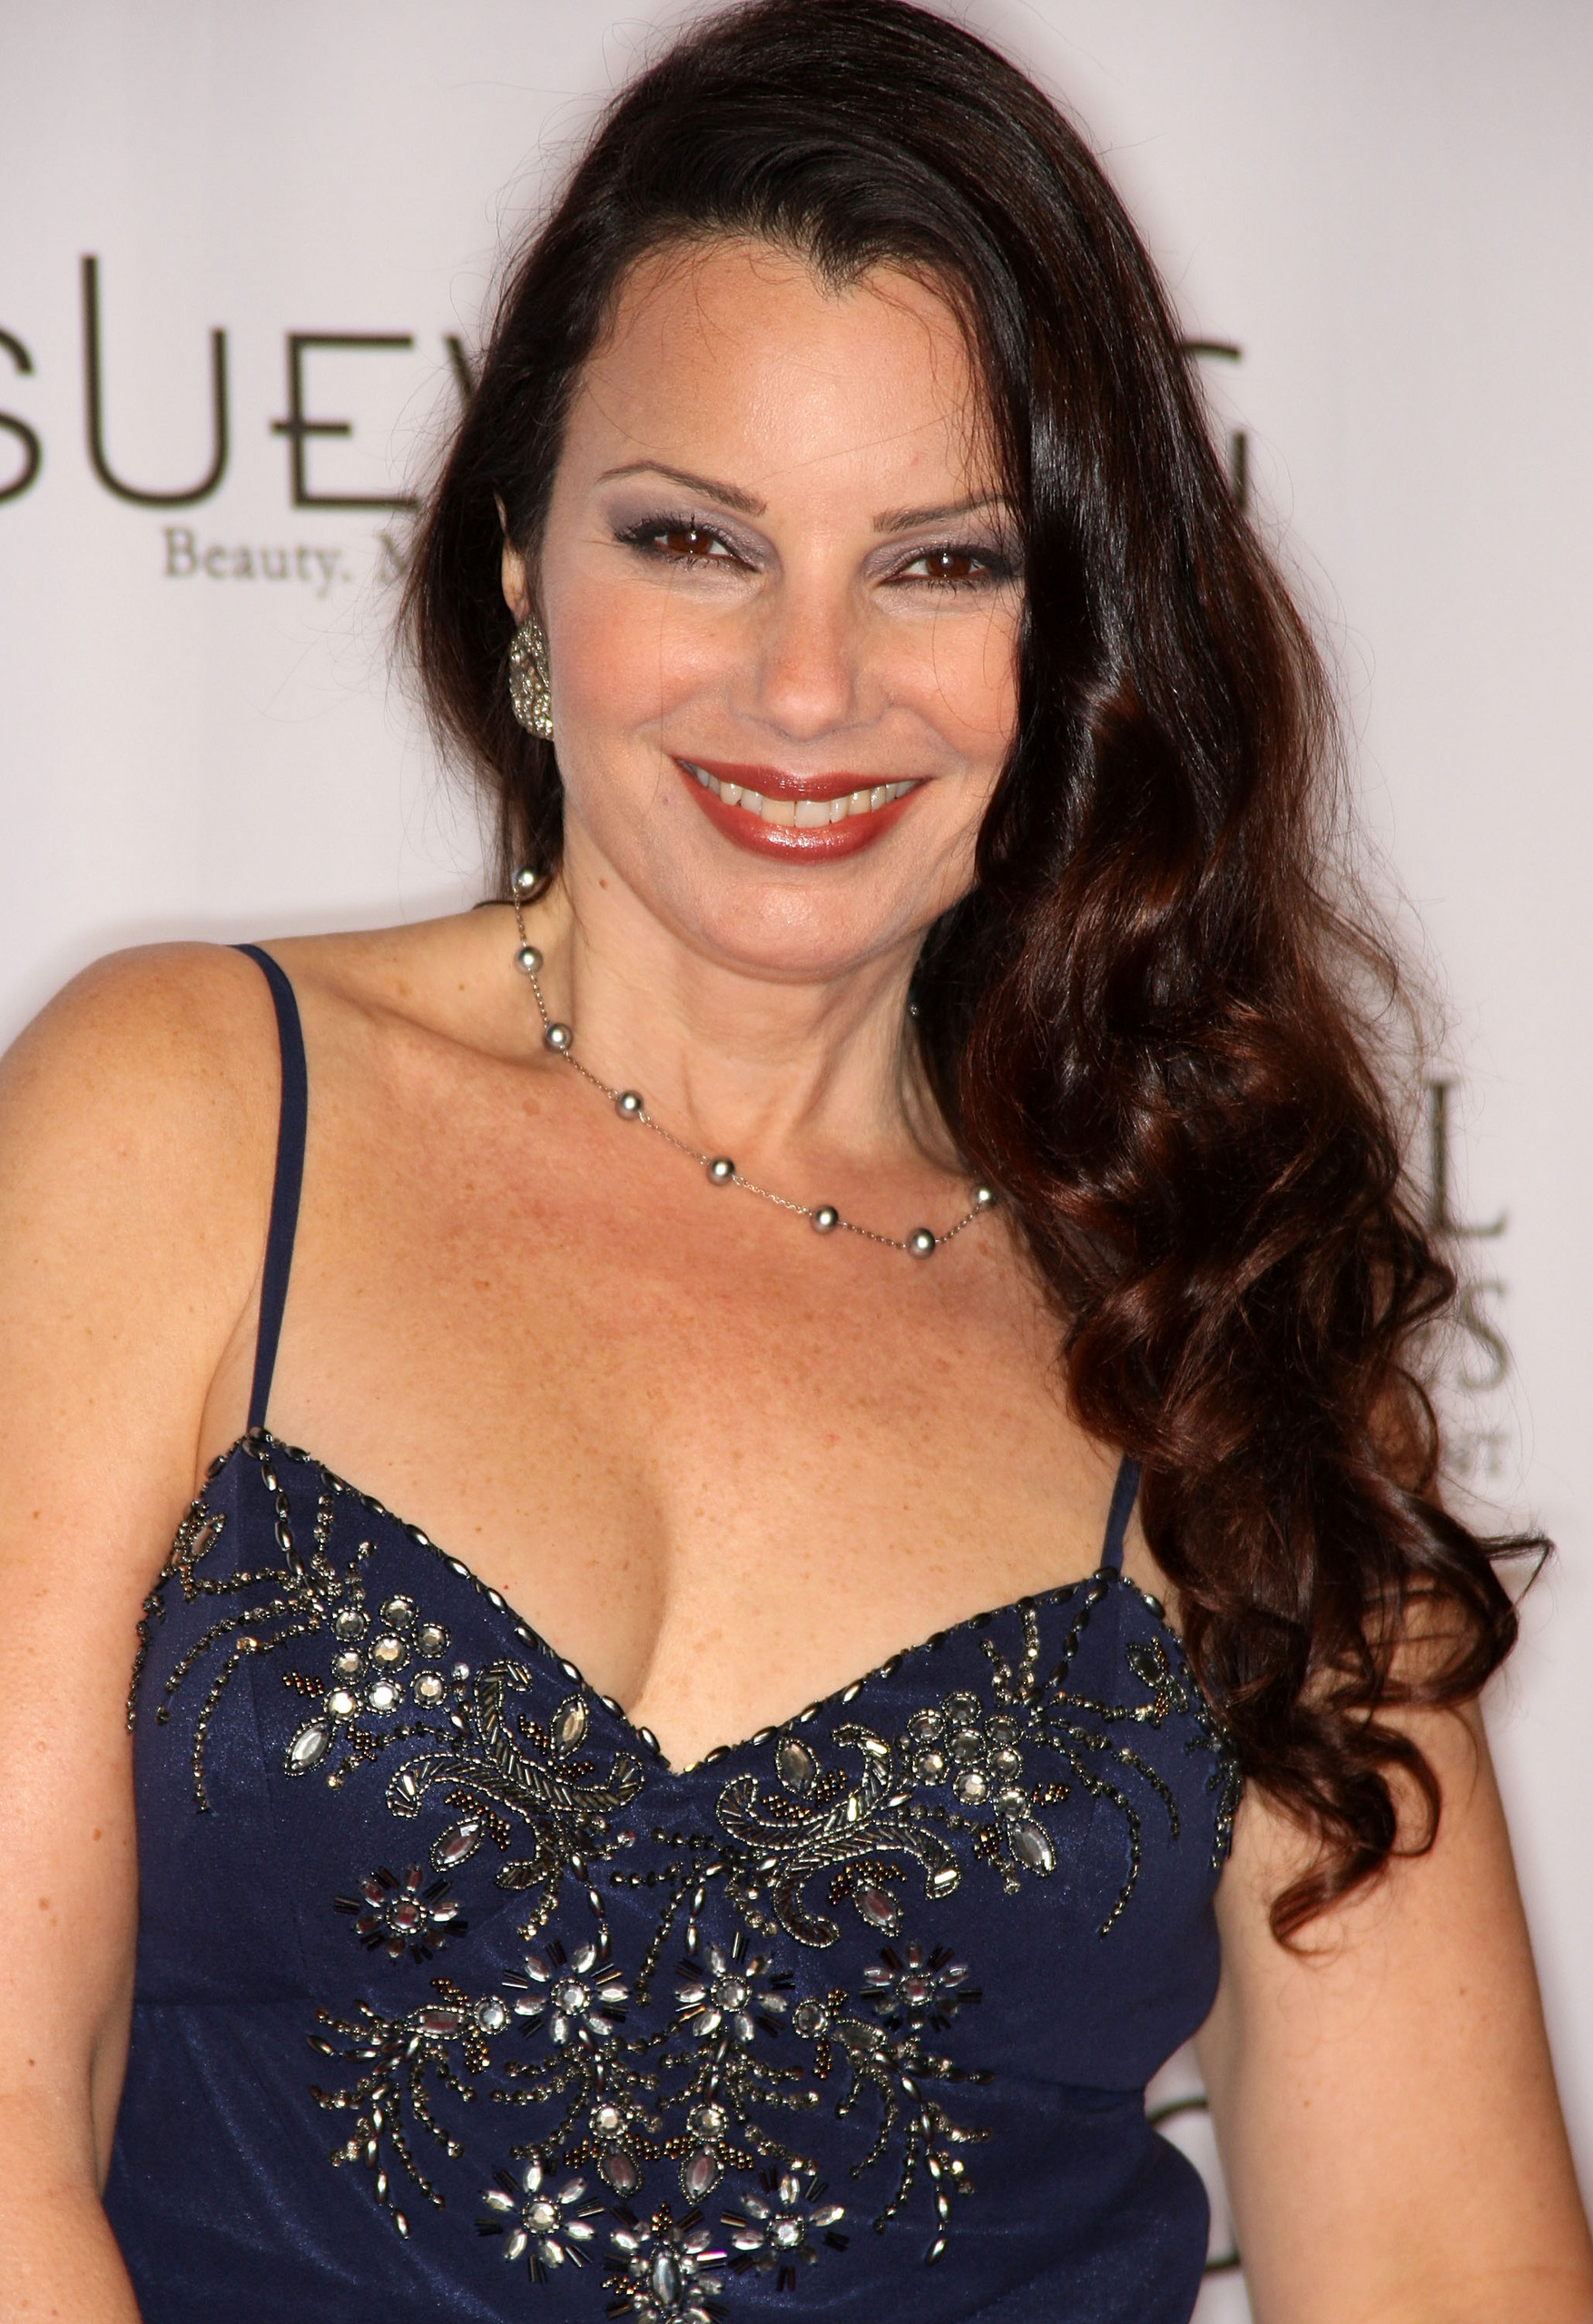 fran drescher veganfran drescher wiki, fran drescher show, fran drescher nationality, fran drescher friends, fran drescher gif, fran drescher saturday, fran drescher laughing, fran drescher vegan, fran drescher ufo, fran drescher instagram, fran drescher 2016, fran drescher films, fran drescher aliens, fran drescher photo hot, fran drescher charles shaughnessy married, fran drescher interview